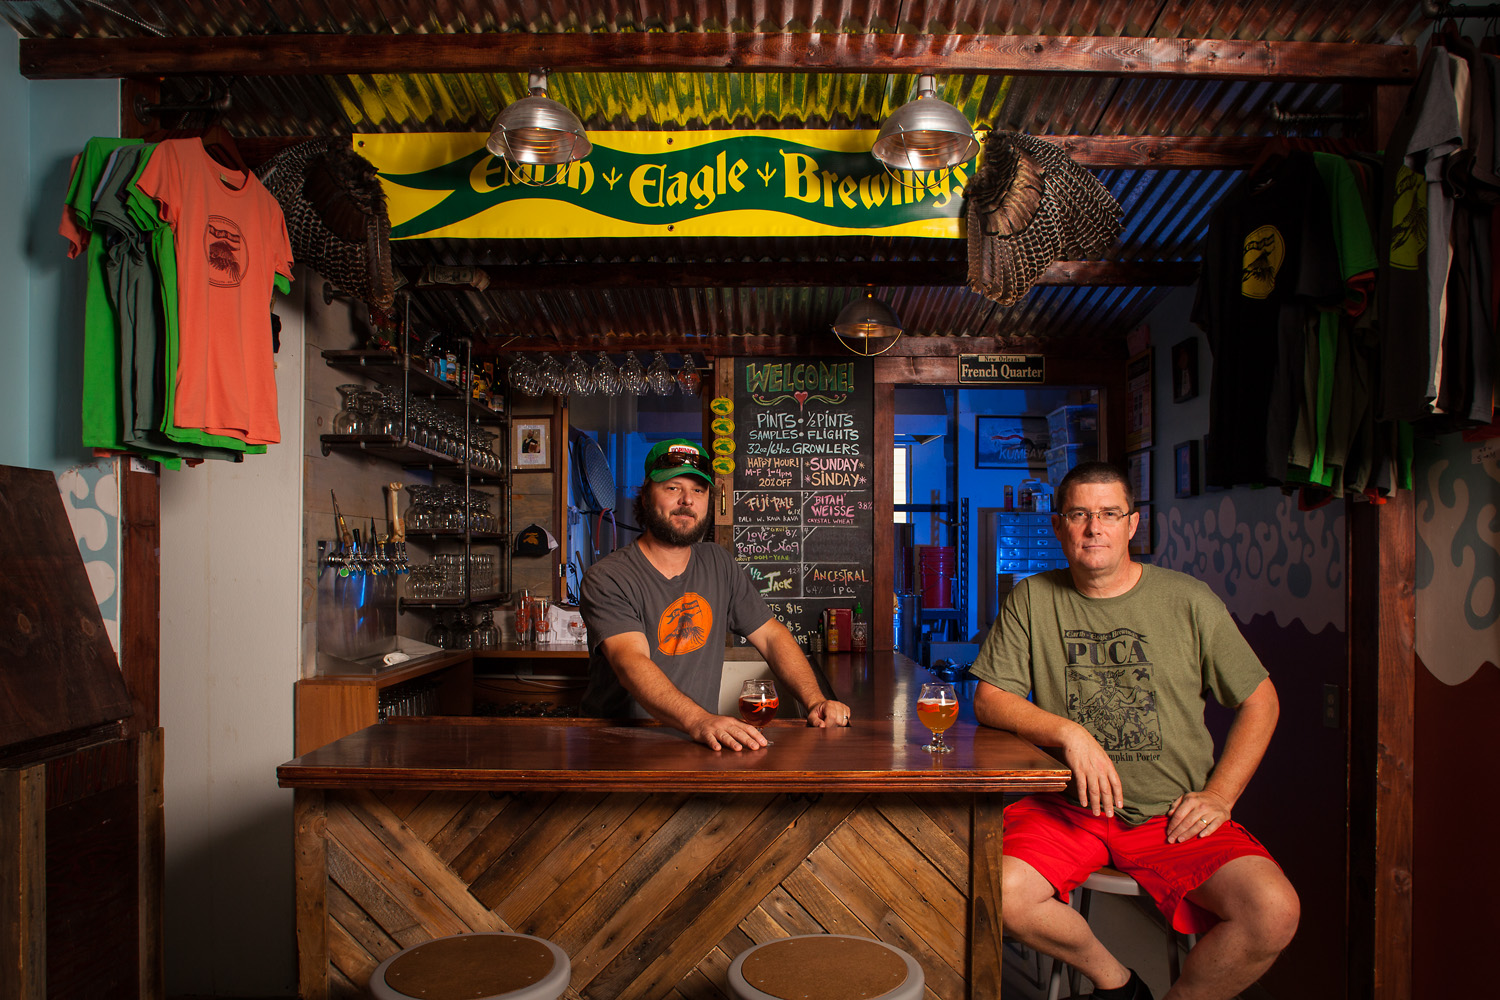 Alex Mcdonald and Butch Heilshorn, Brewmasters at Earth Eagle Brewings Portsmouth, NH Established in 2012